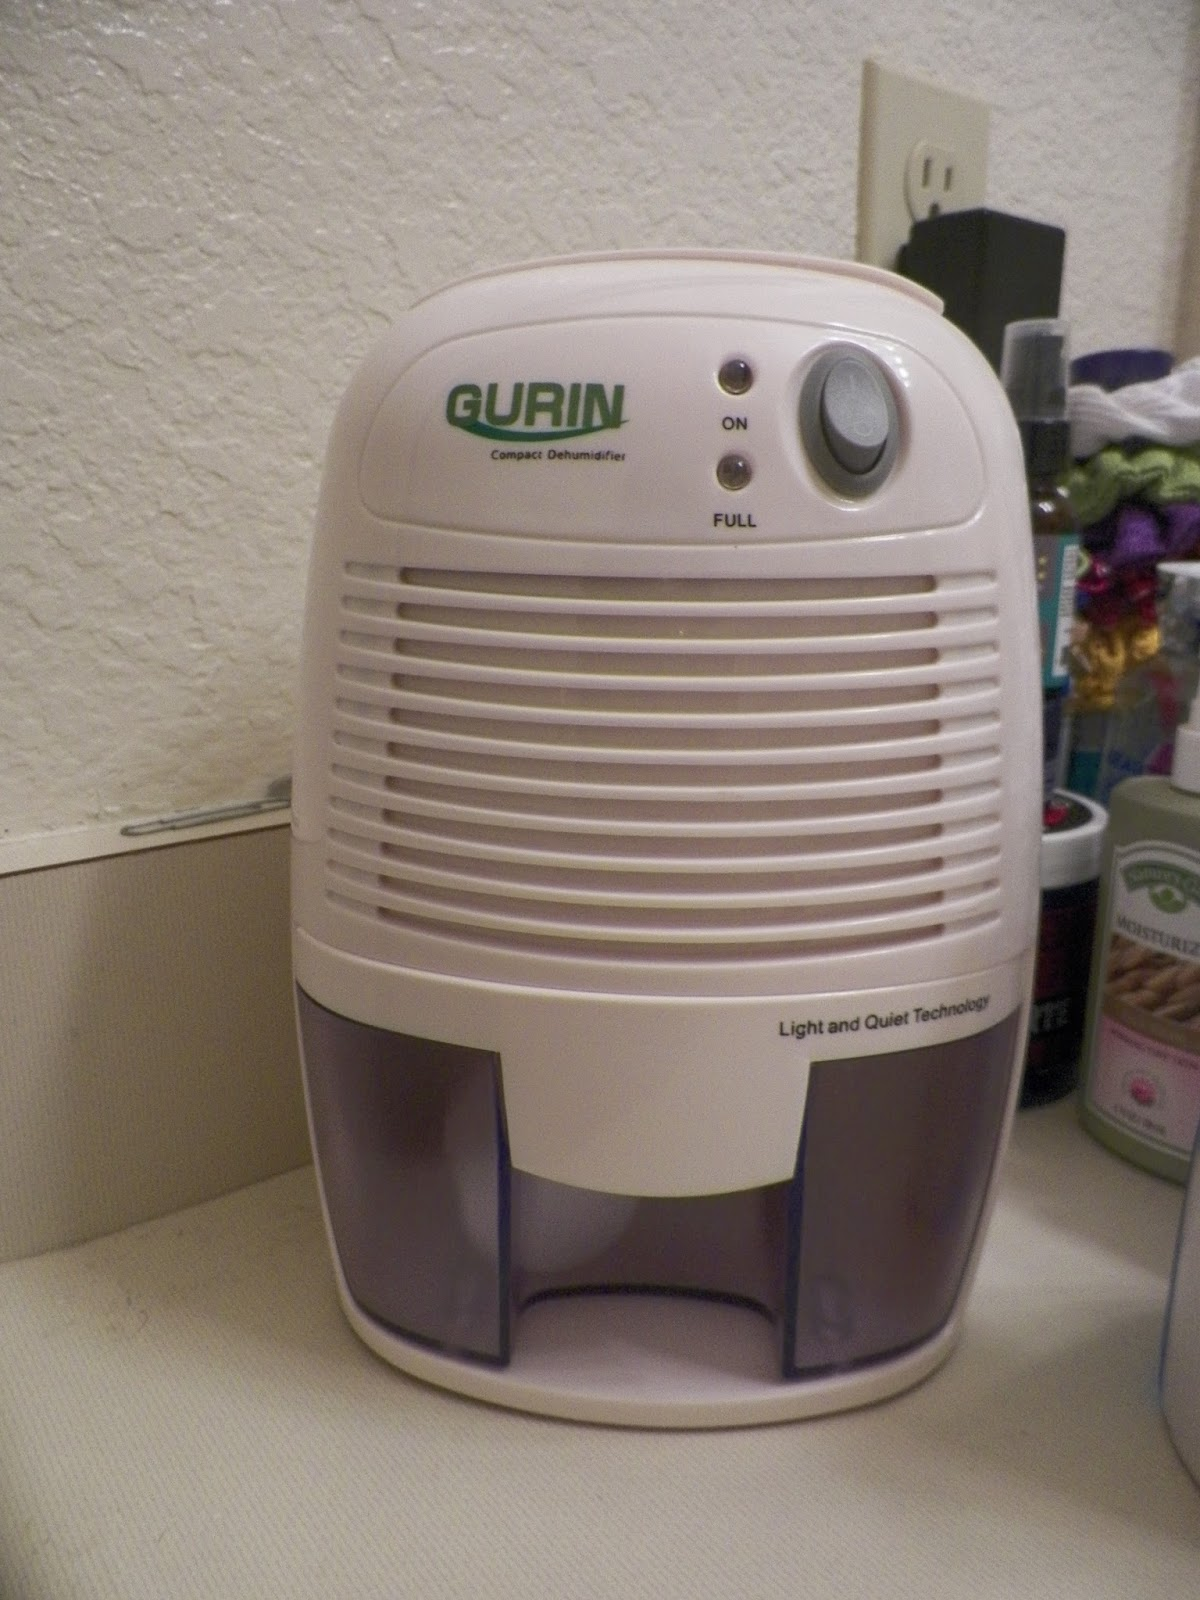 Mygreatfinds Gurin Electric Compact Dehumidifier Review